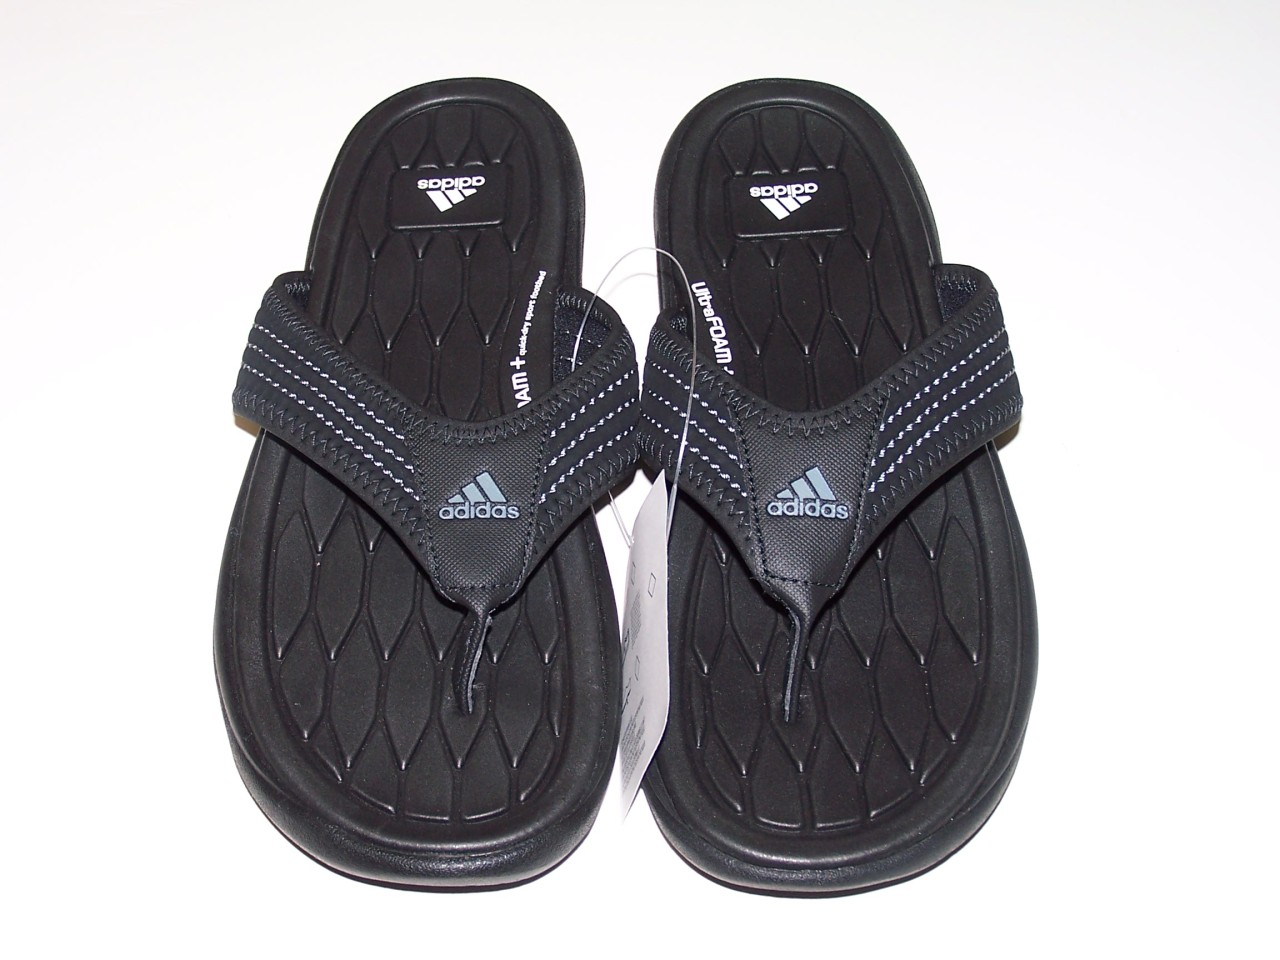 0fd15a7abe43f NWT ADIDAS RAGGMO ULTRA FOAM THONG FLIP FLOP SANDALS MENS SIZES 7 12 ...